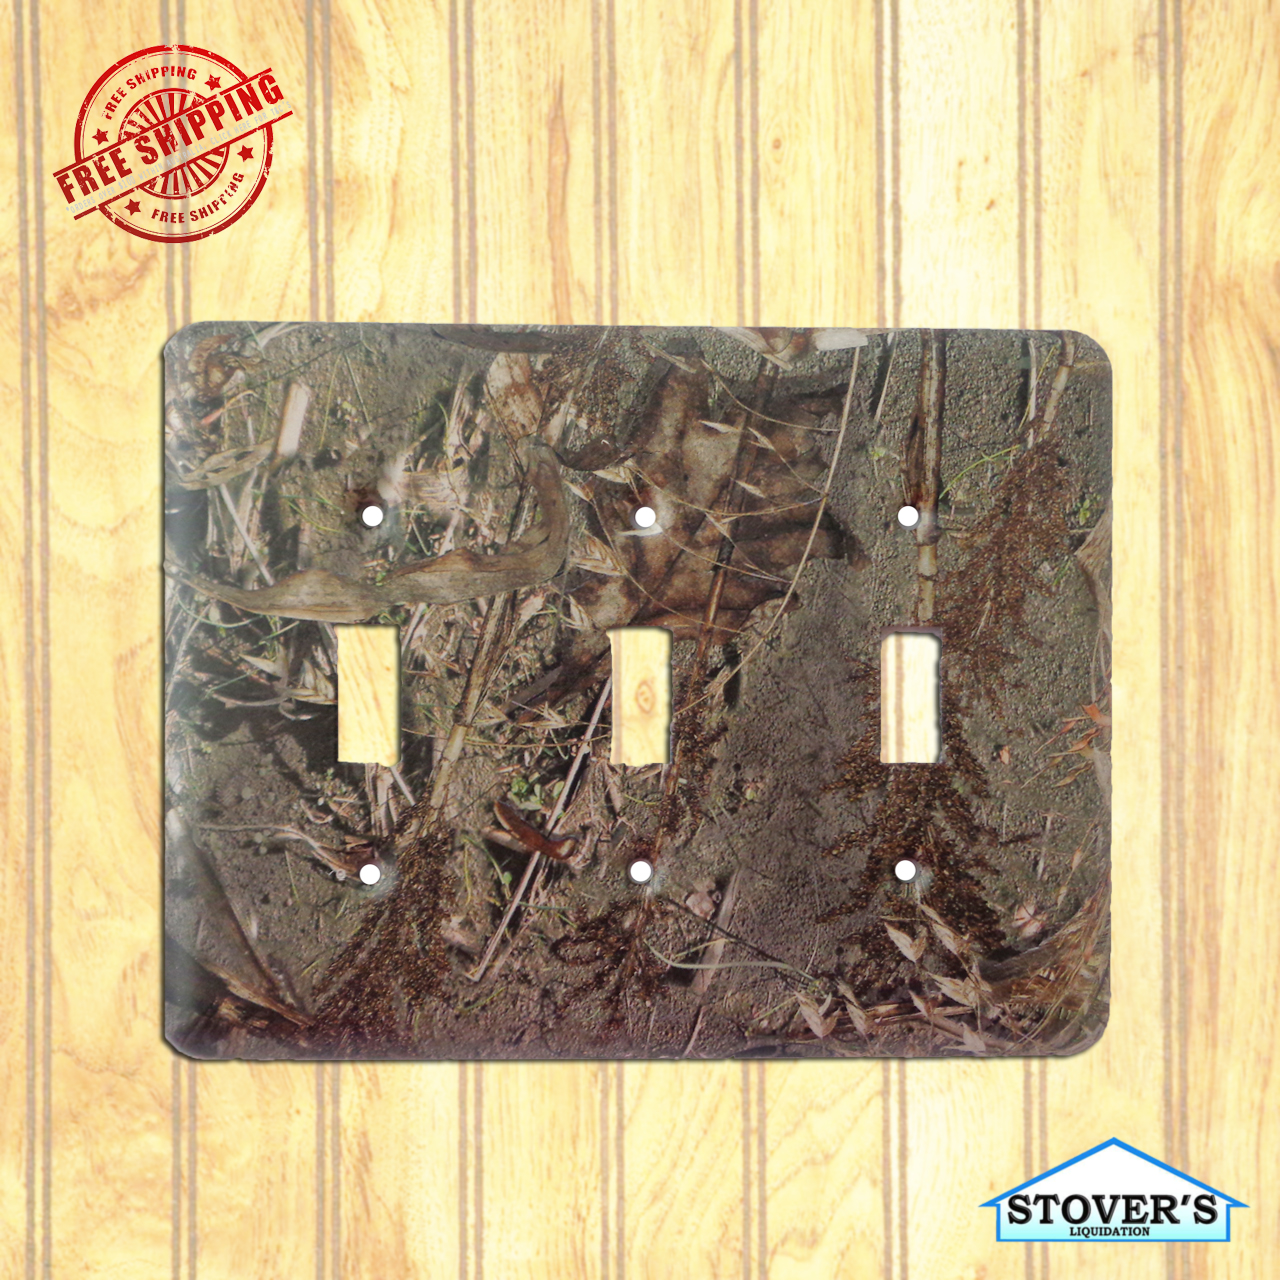 63083-triple-toggle-light-switch-plate-outdoors-camo-mossy-oak-duck-blind-stovers-liquidation.jpg